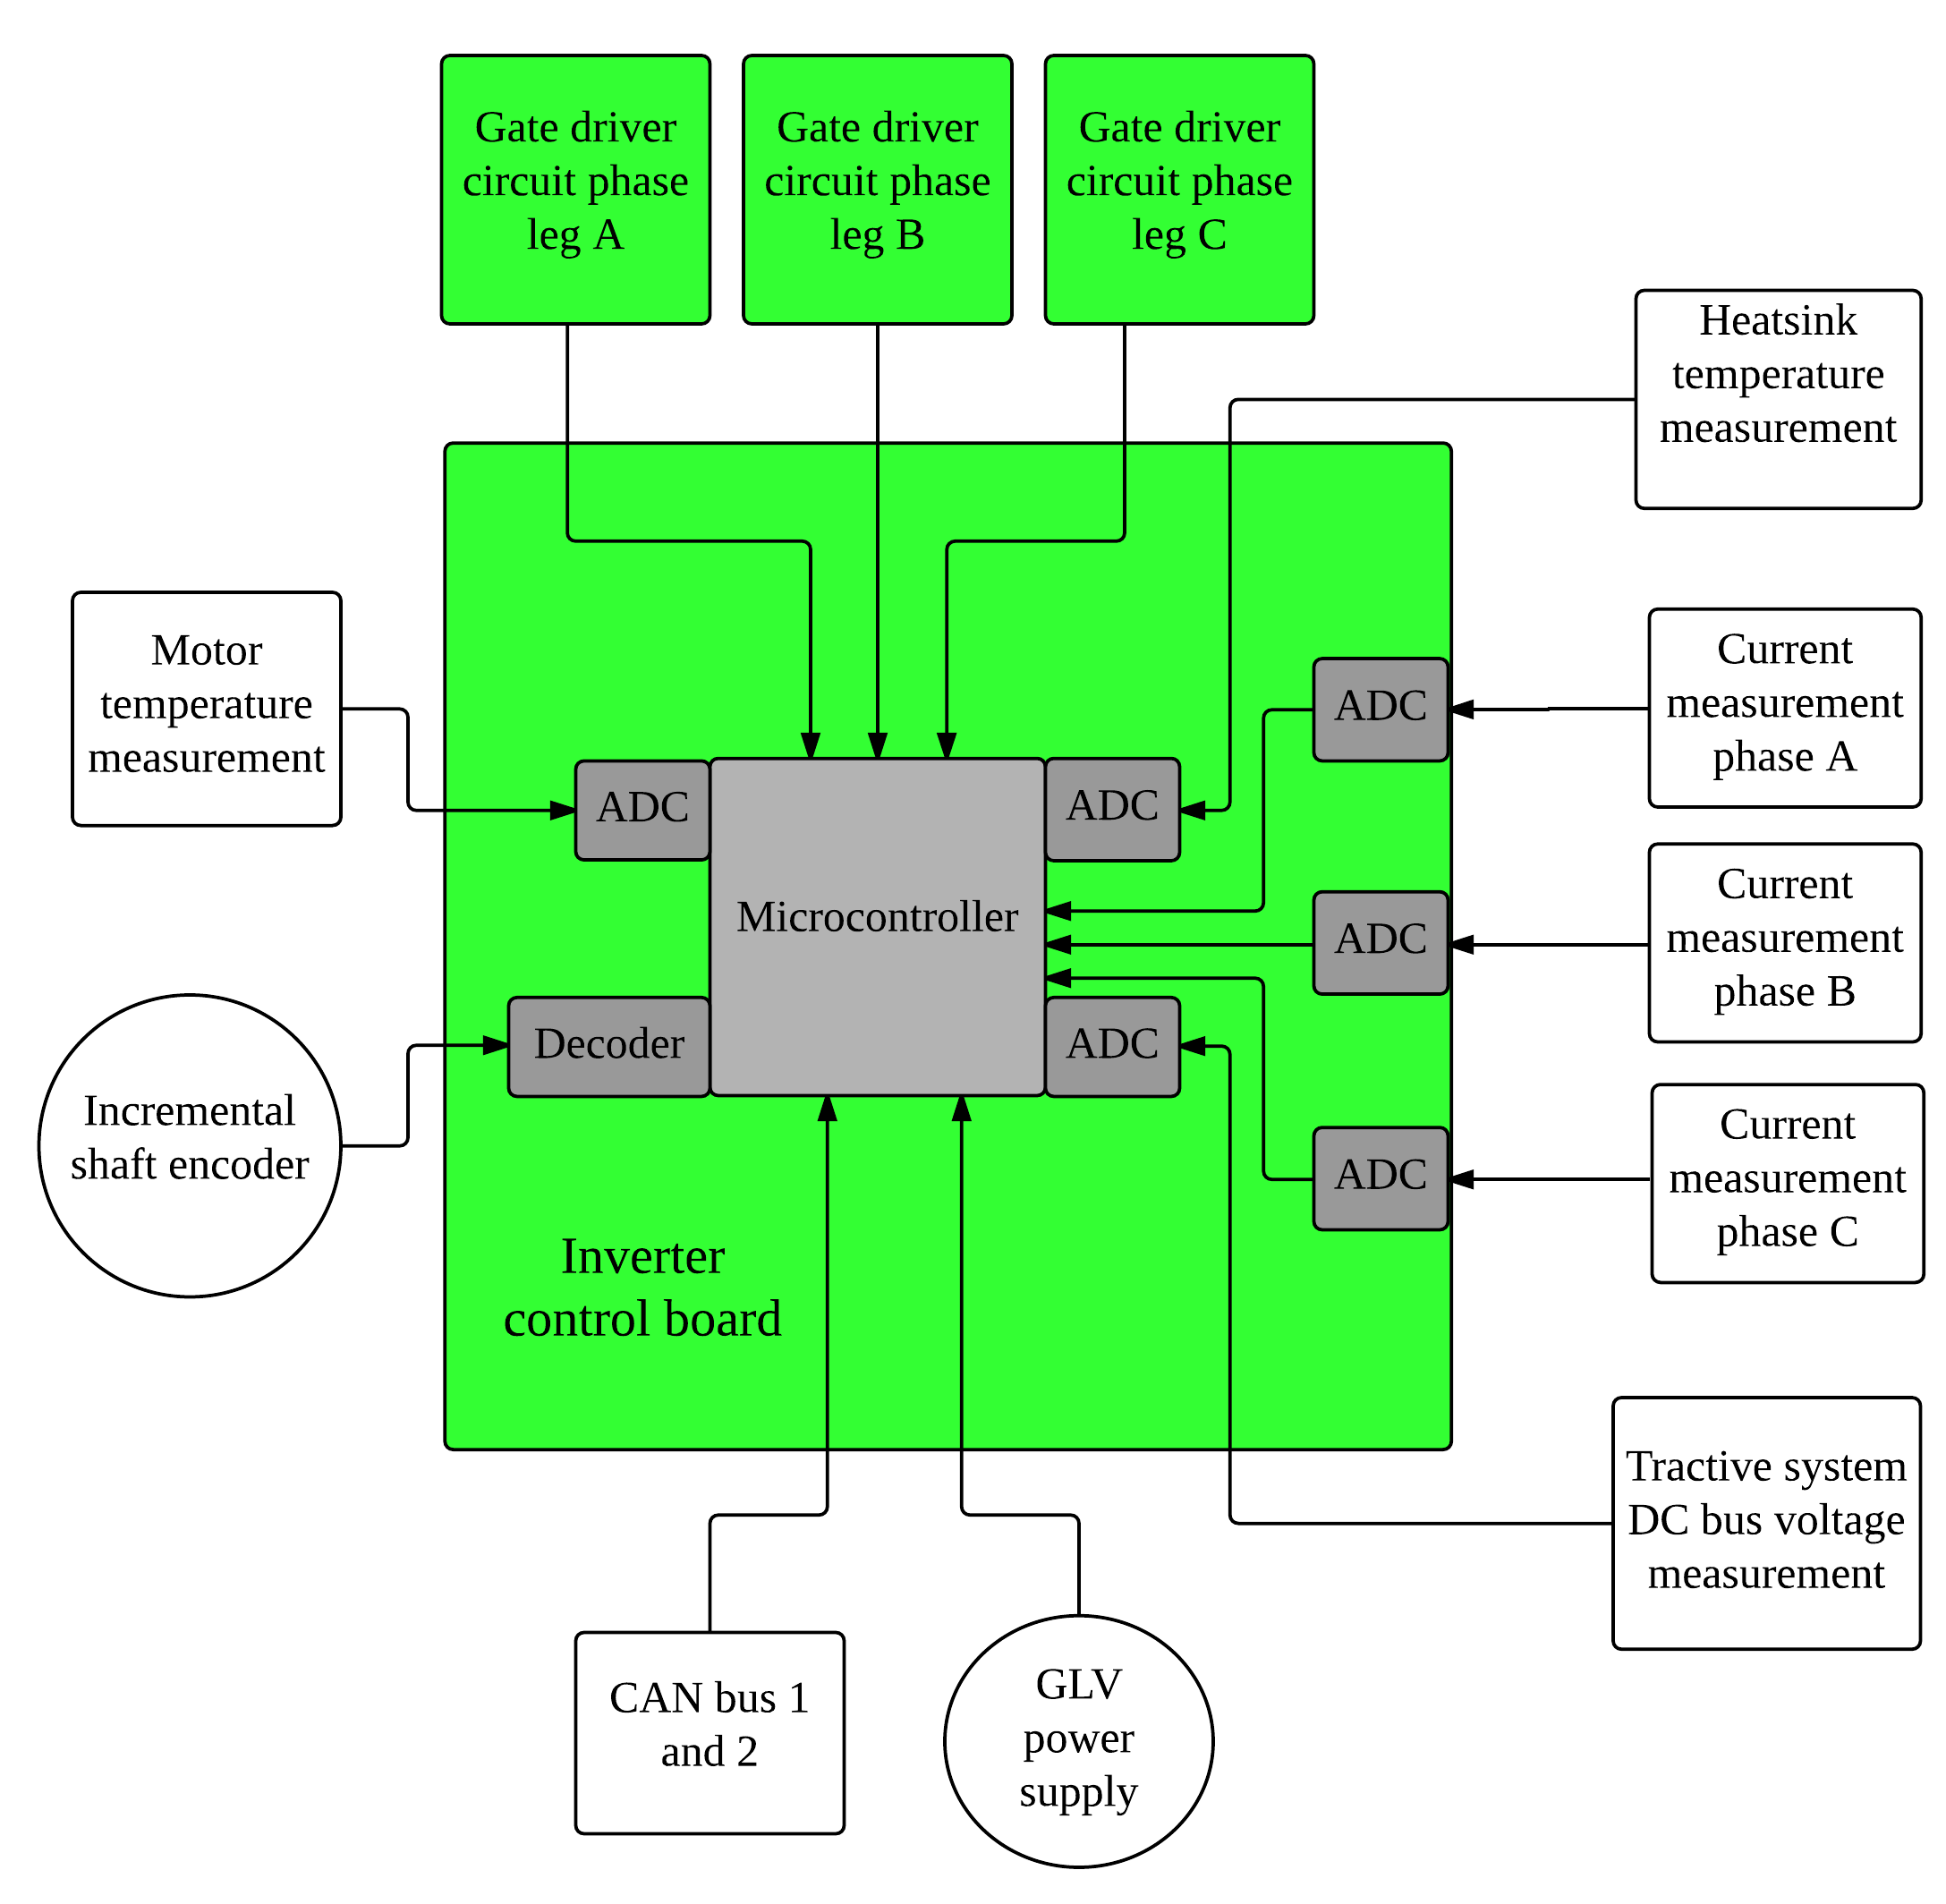 Design And Testing Of Voltage Source Inverter Motor Control Drive Scr Flash Circuit Diagram Powersupplycircuit 5 System Hardware 51 Board To Process The Measurement Data